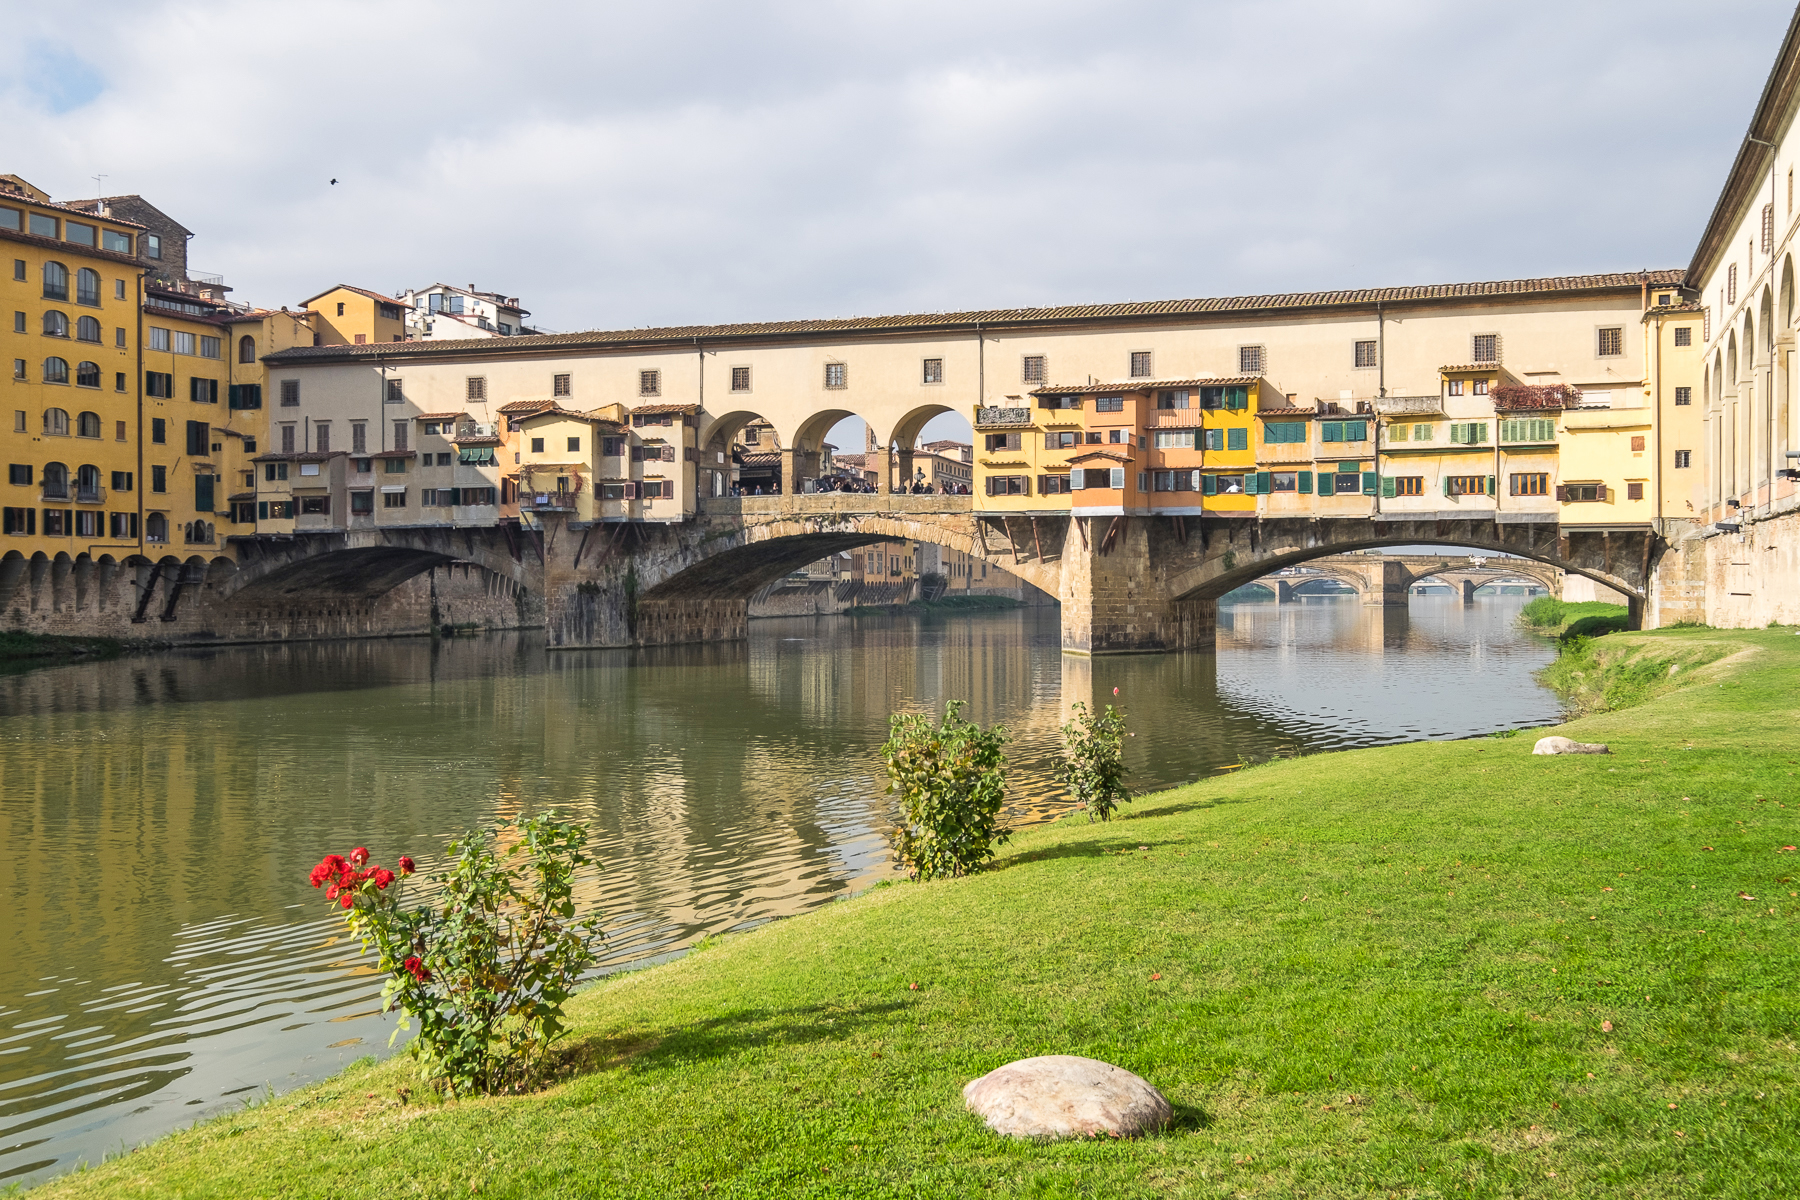 Single Family Home for Sale at Commercial Fund on Ponte Vecchio Firenze, 50100 Italy